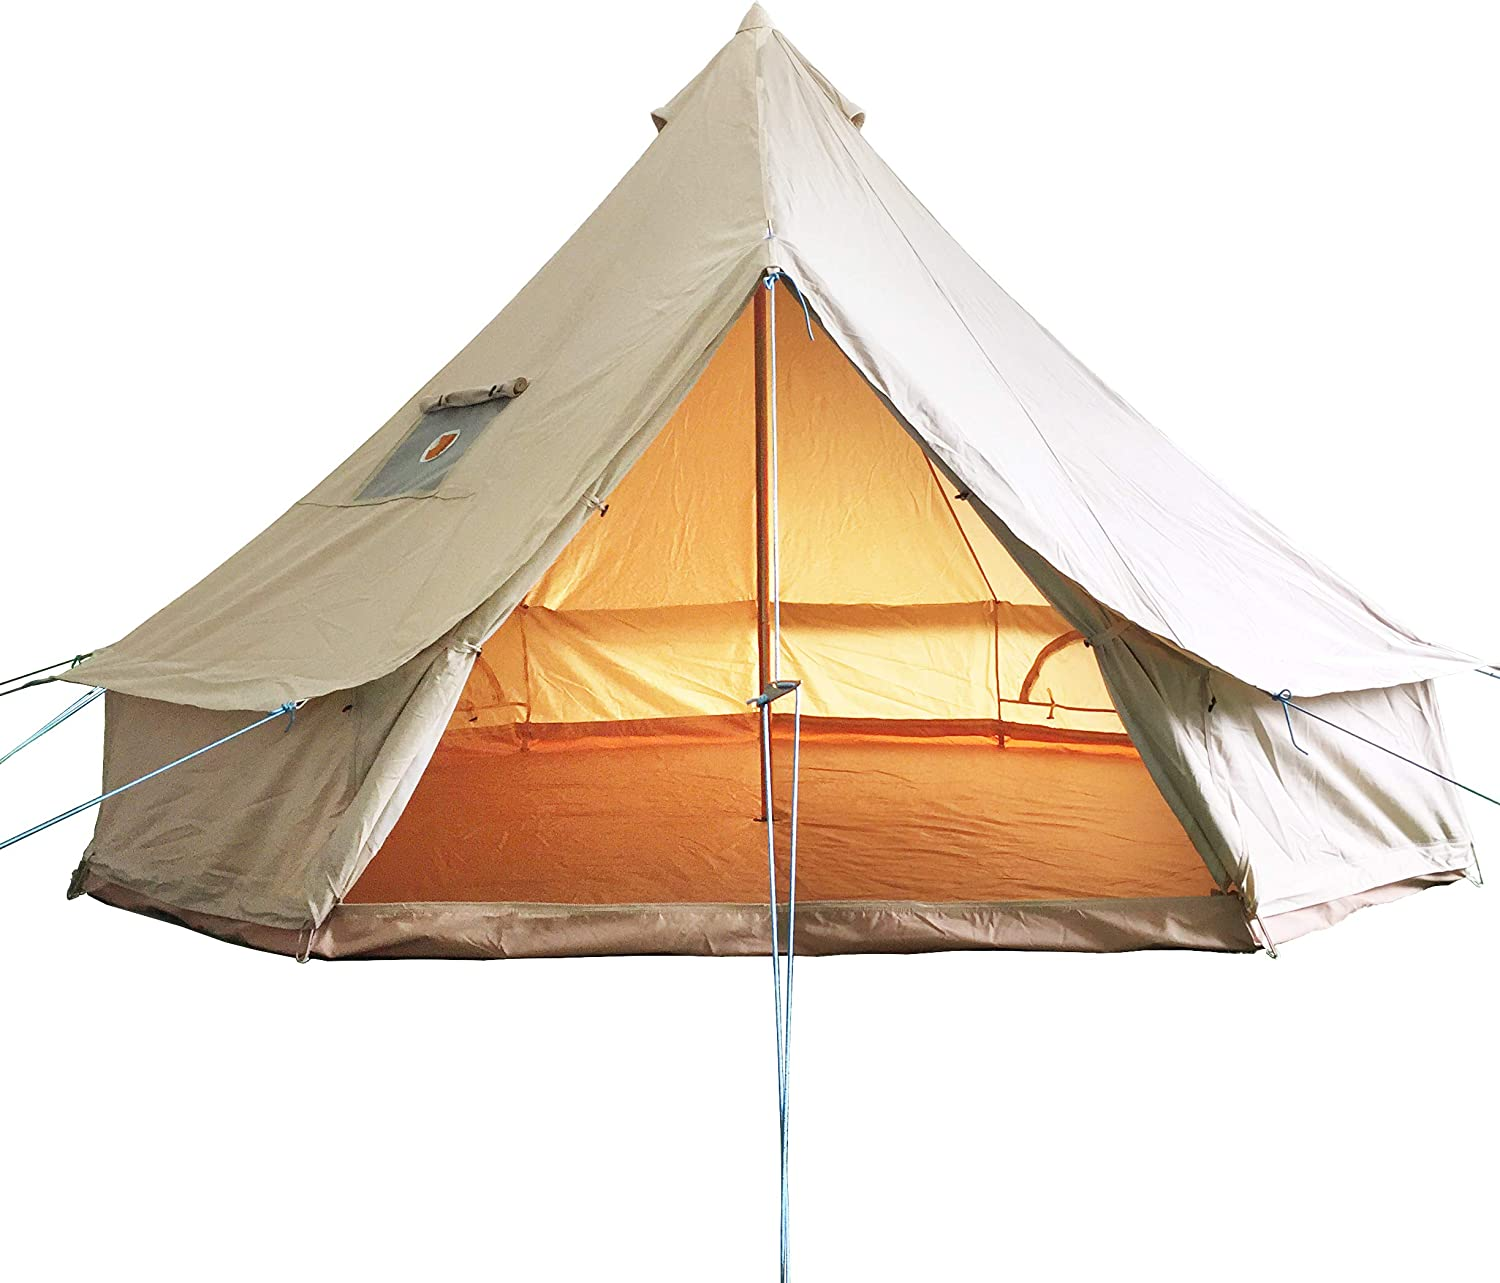 Luxury Outdoor Bell Free Sale item Shipping New Tent 4 Season T Large Canvas Glamping Cotton